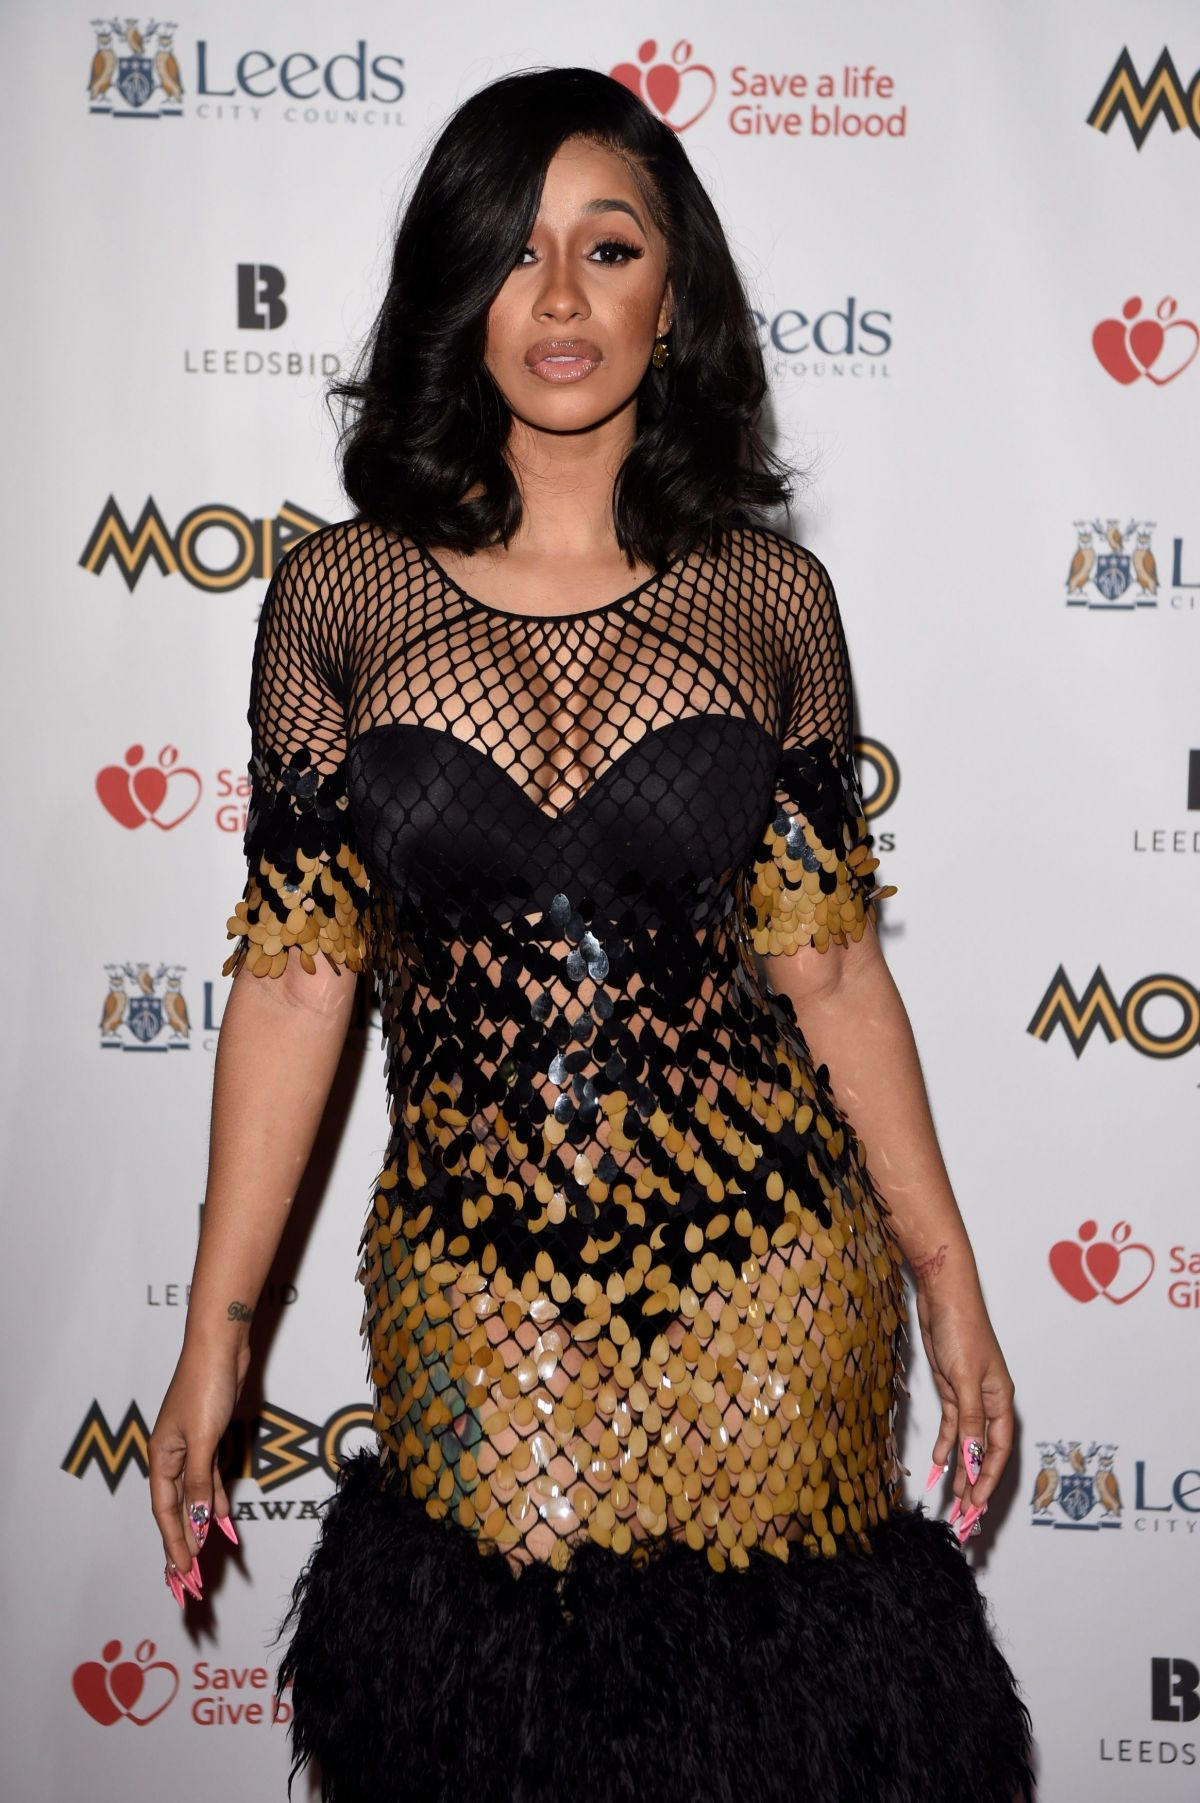 Cardi B At The MOBO Awards at The First Direct Arena in Leeds - Celebzz